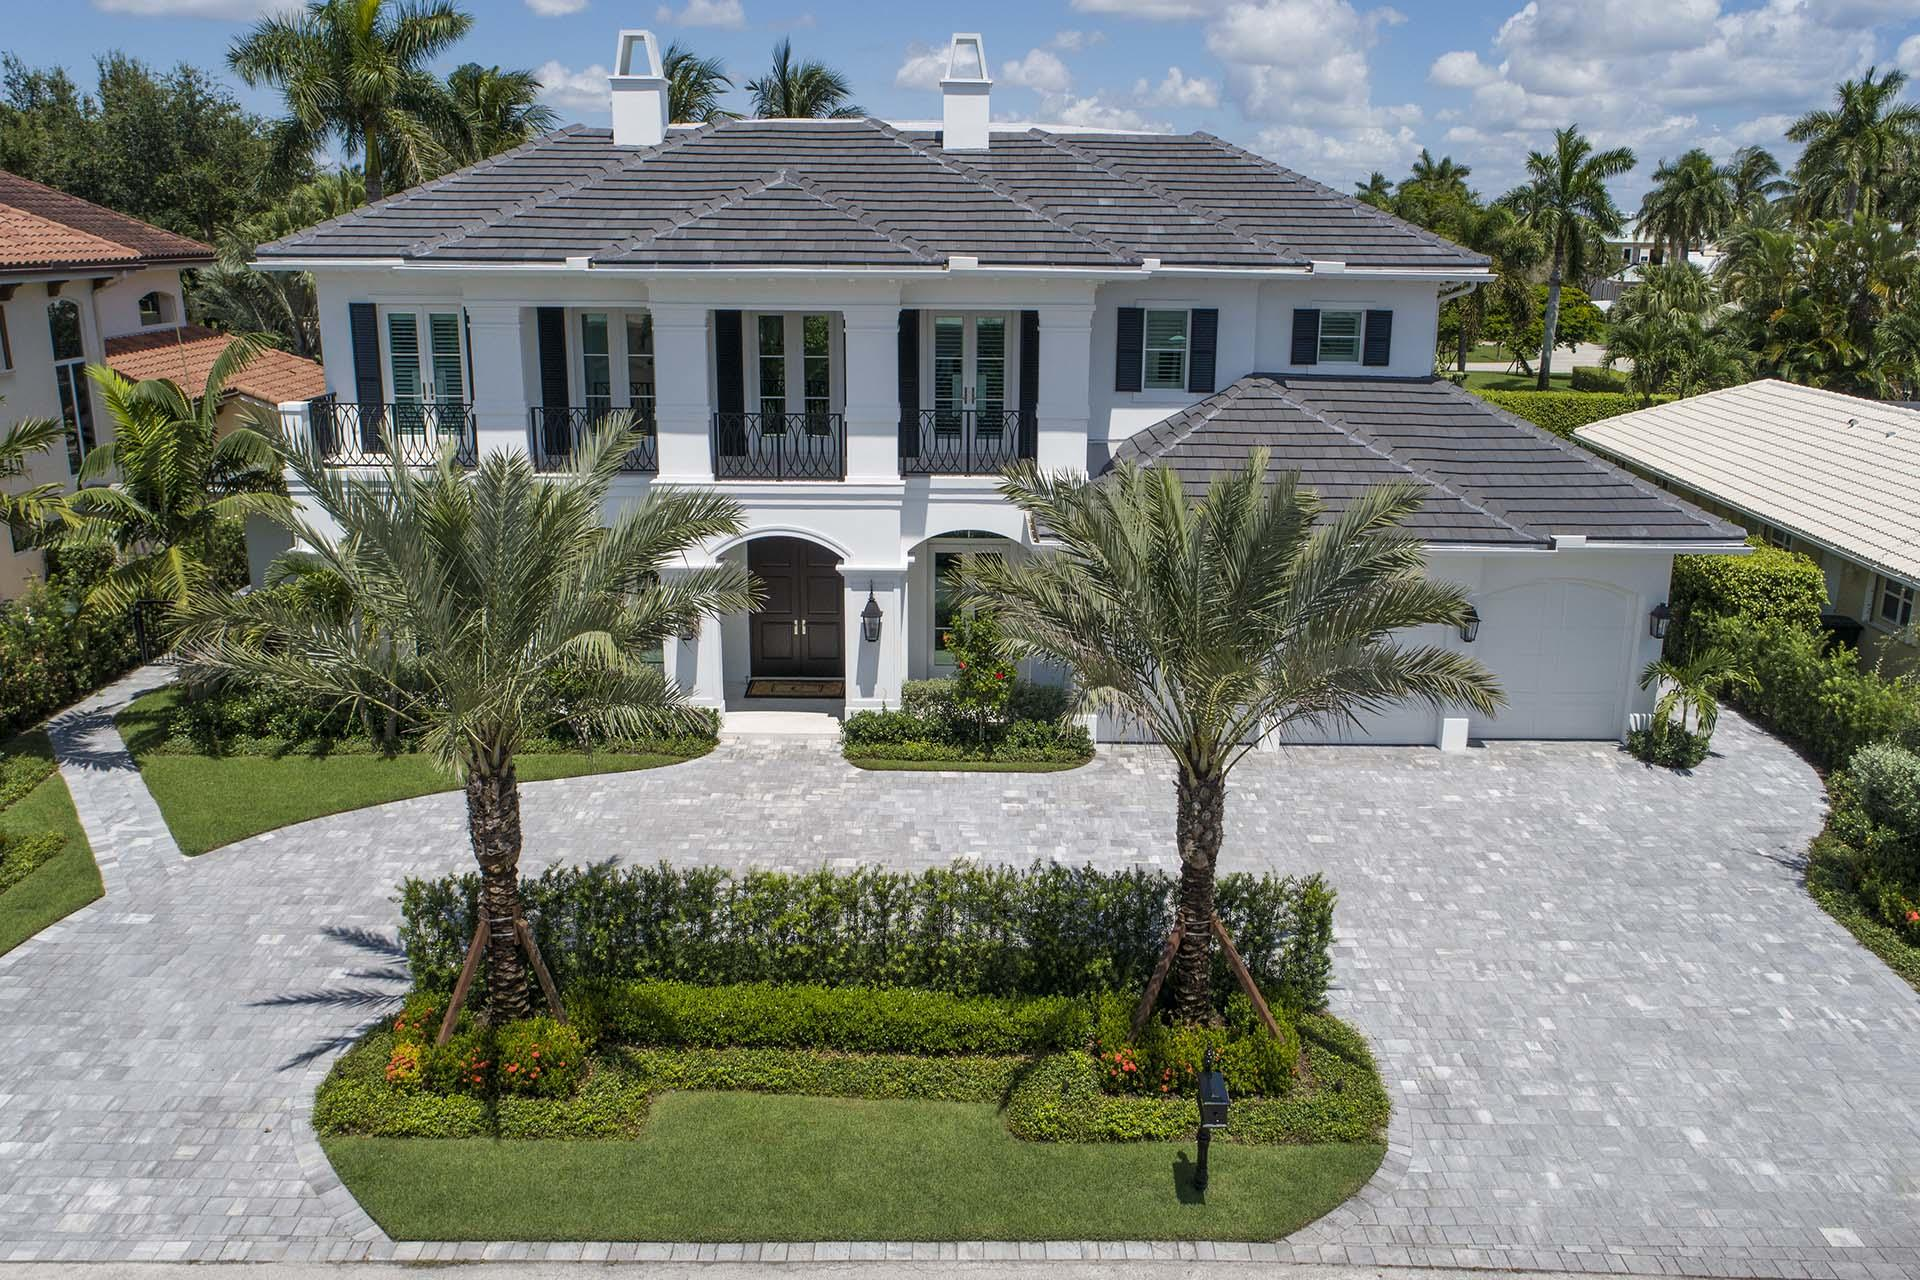 Home for sale in Royal Palm Yacht Boca Raton Florida